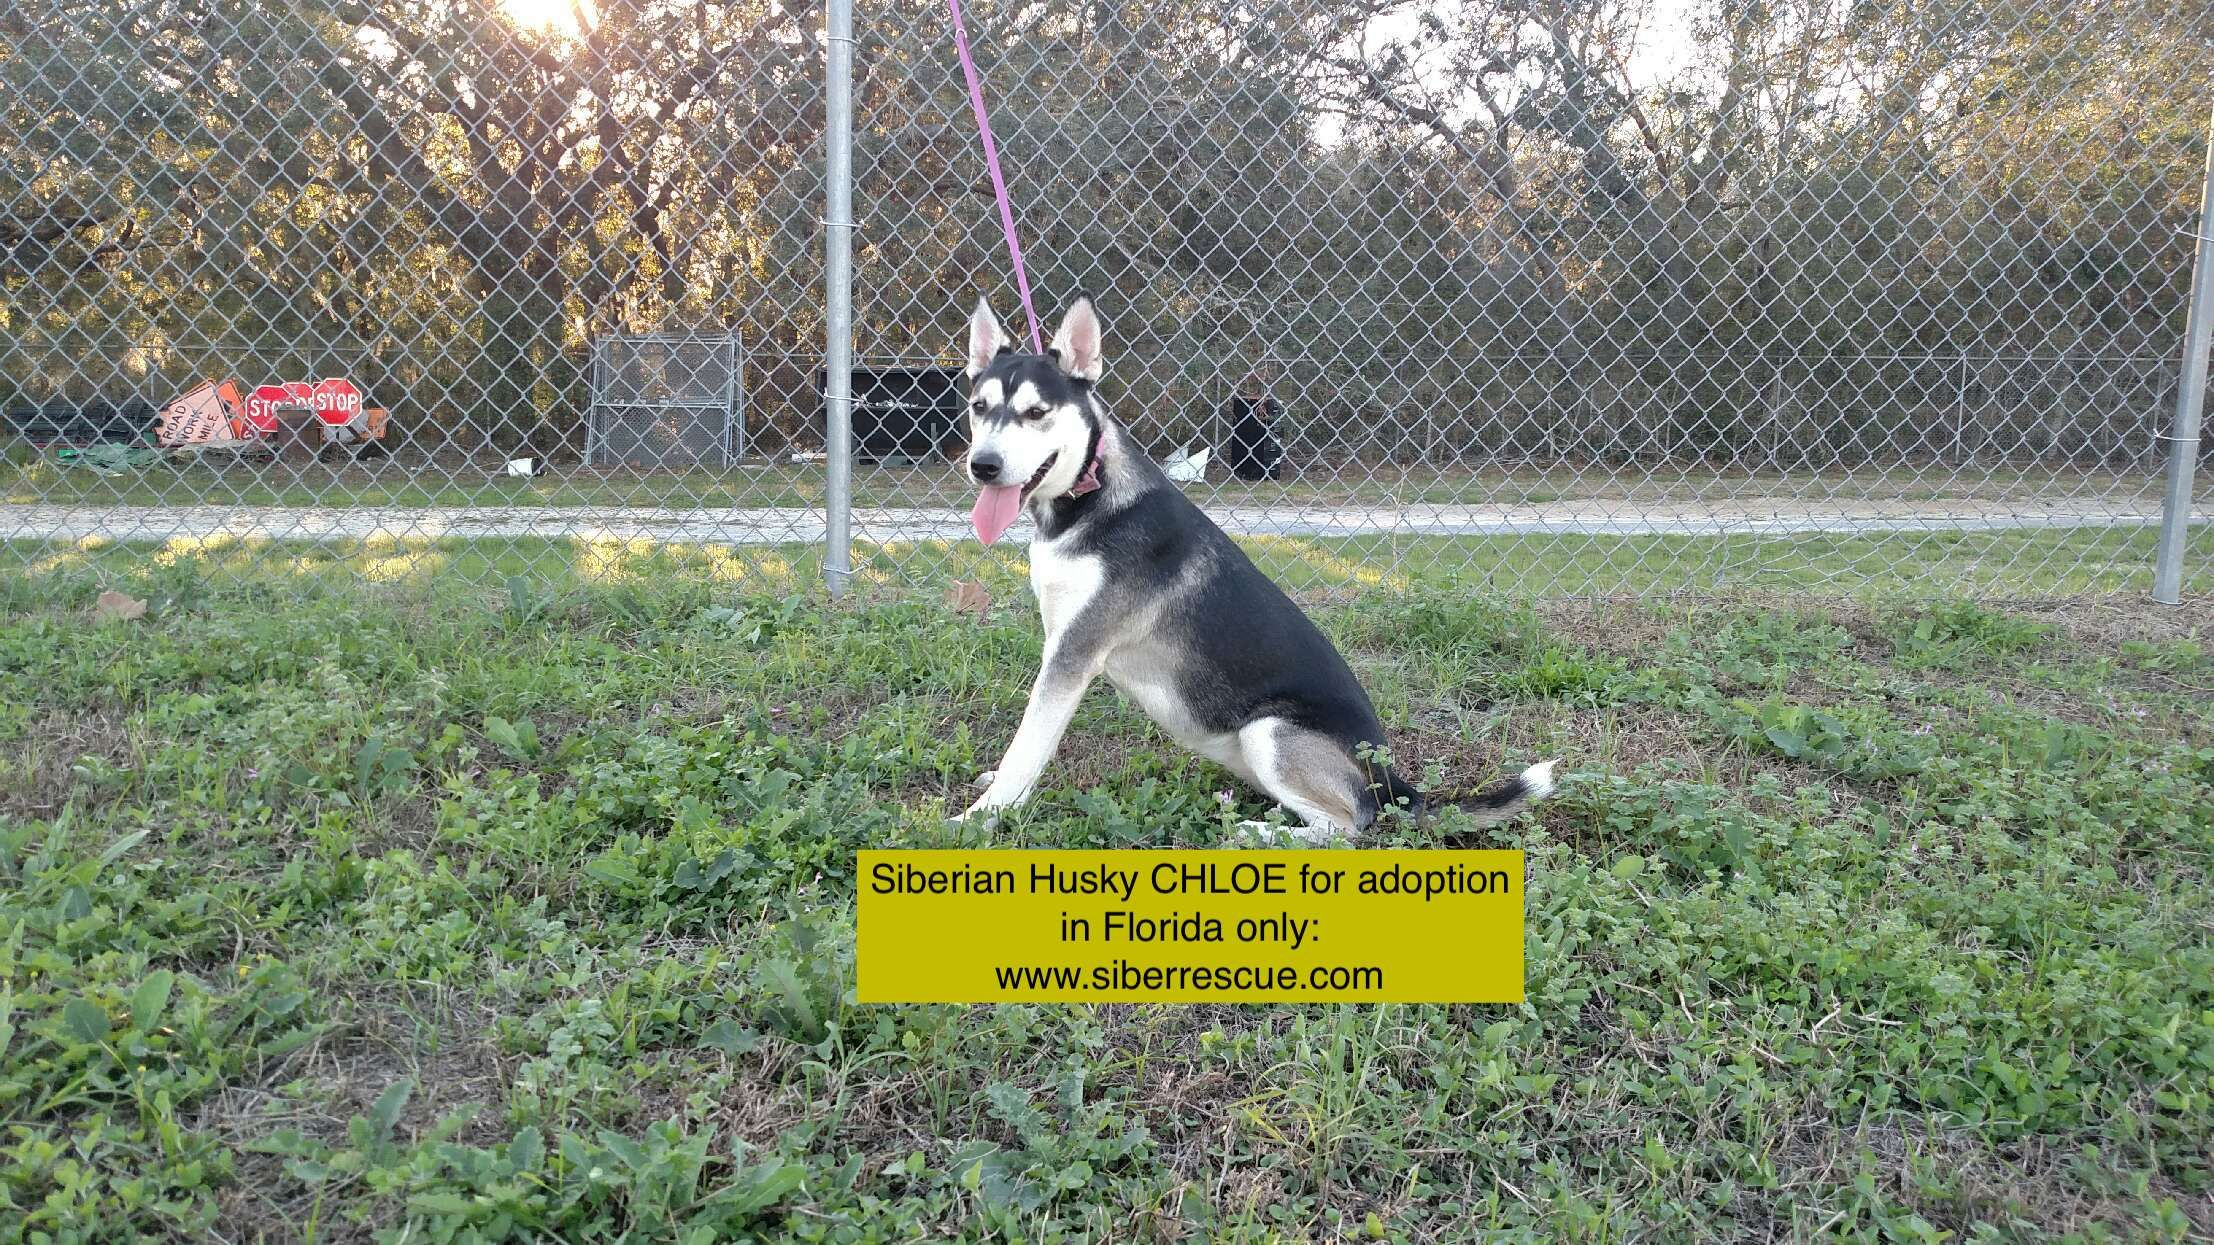 For Adoption In Florida Only Siberian Husky Chloe Apply To